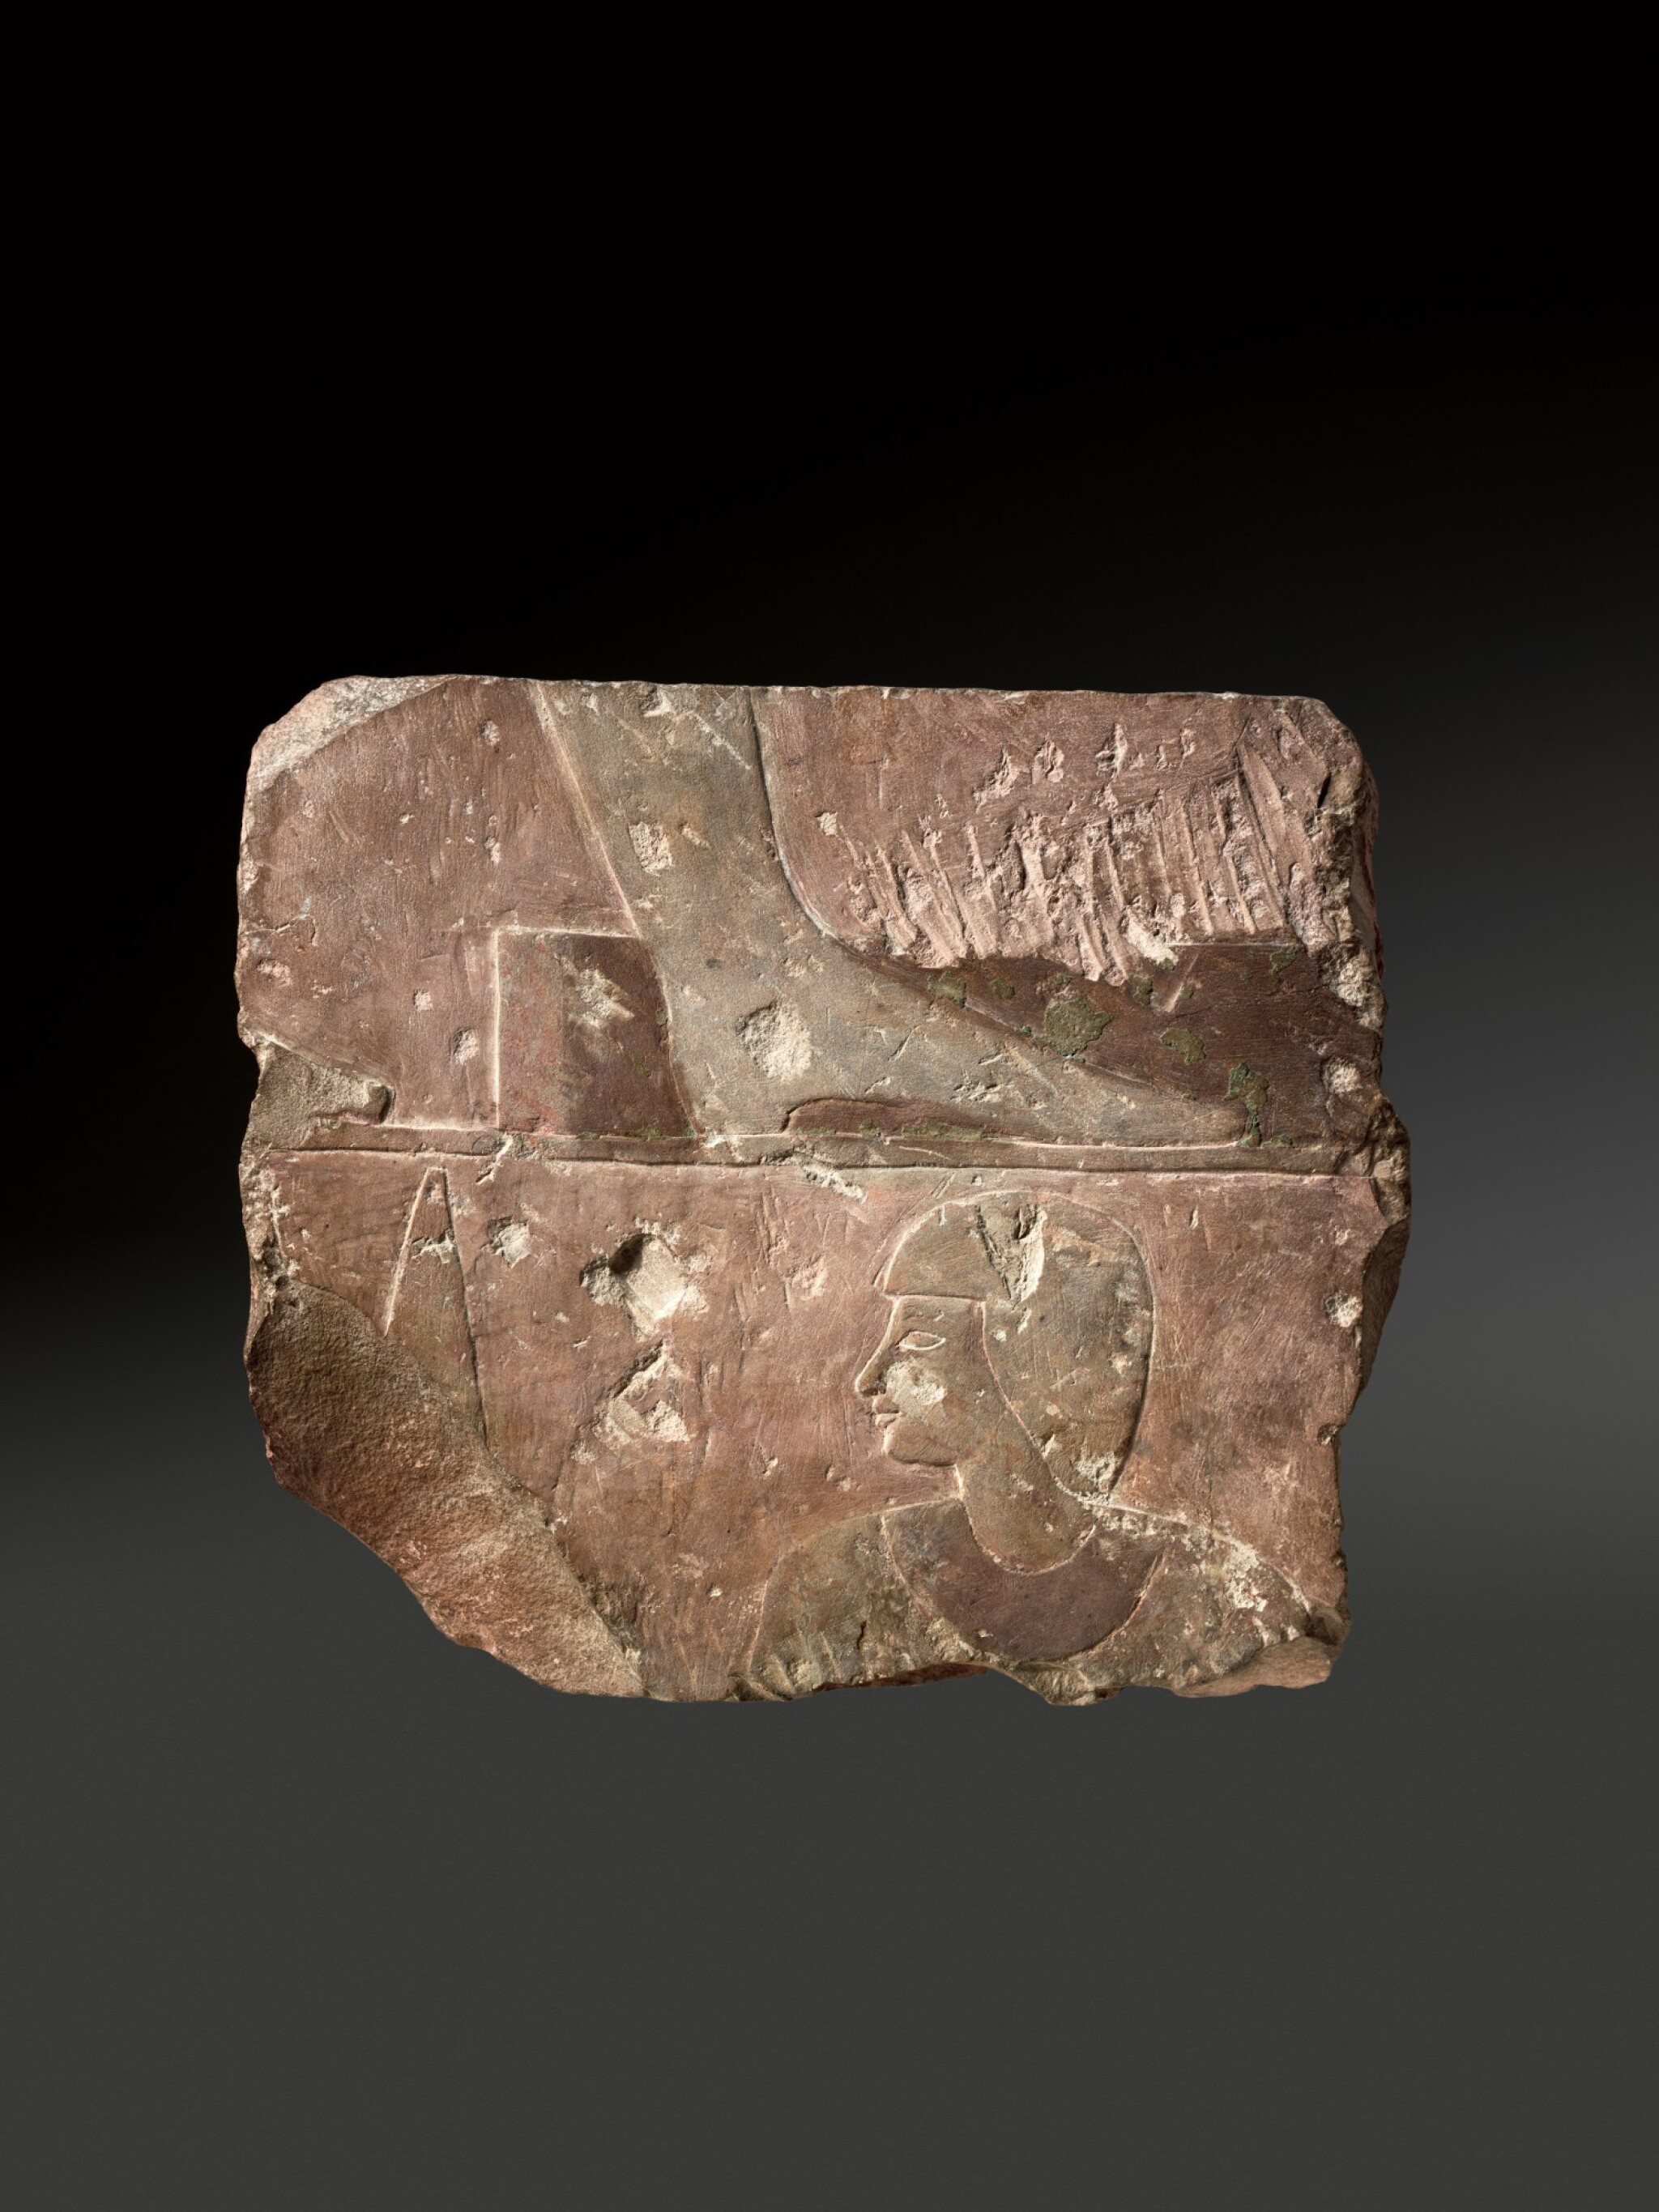 View full screen - View 1 of Lot 41. An Egyptian Polychrome Limestone Relief fragment, 26th Dynasty, reign of Psamtik I, 664-610 B.C., or earlier.